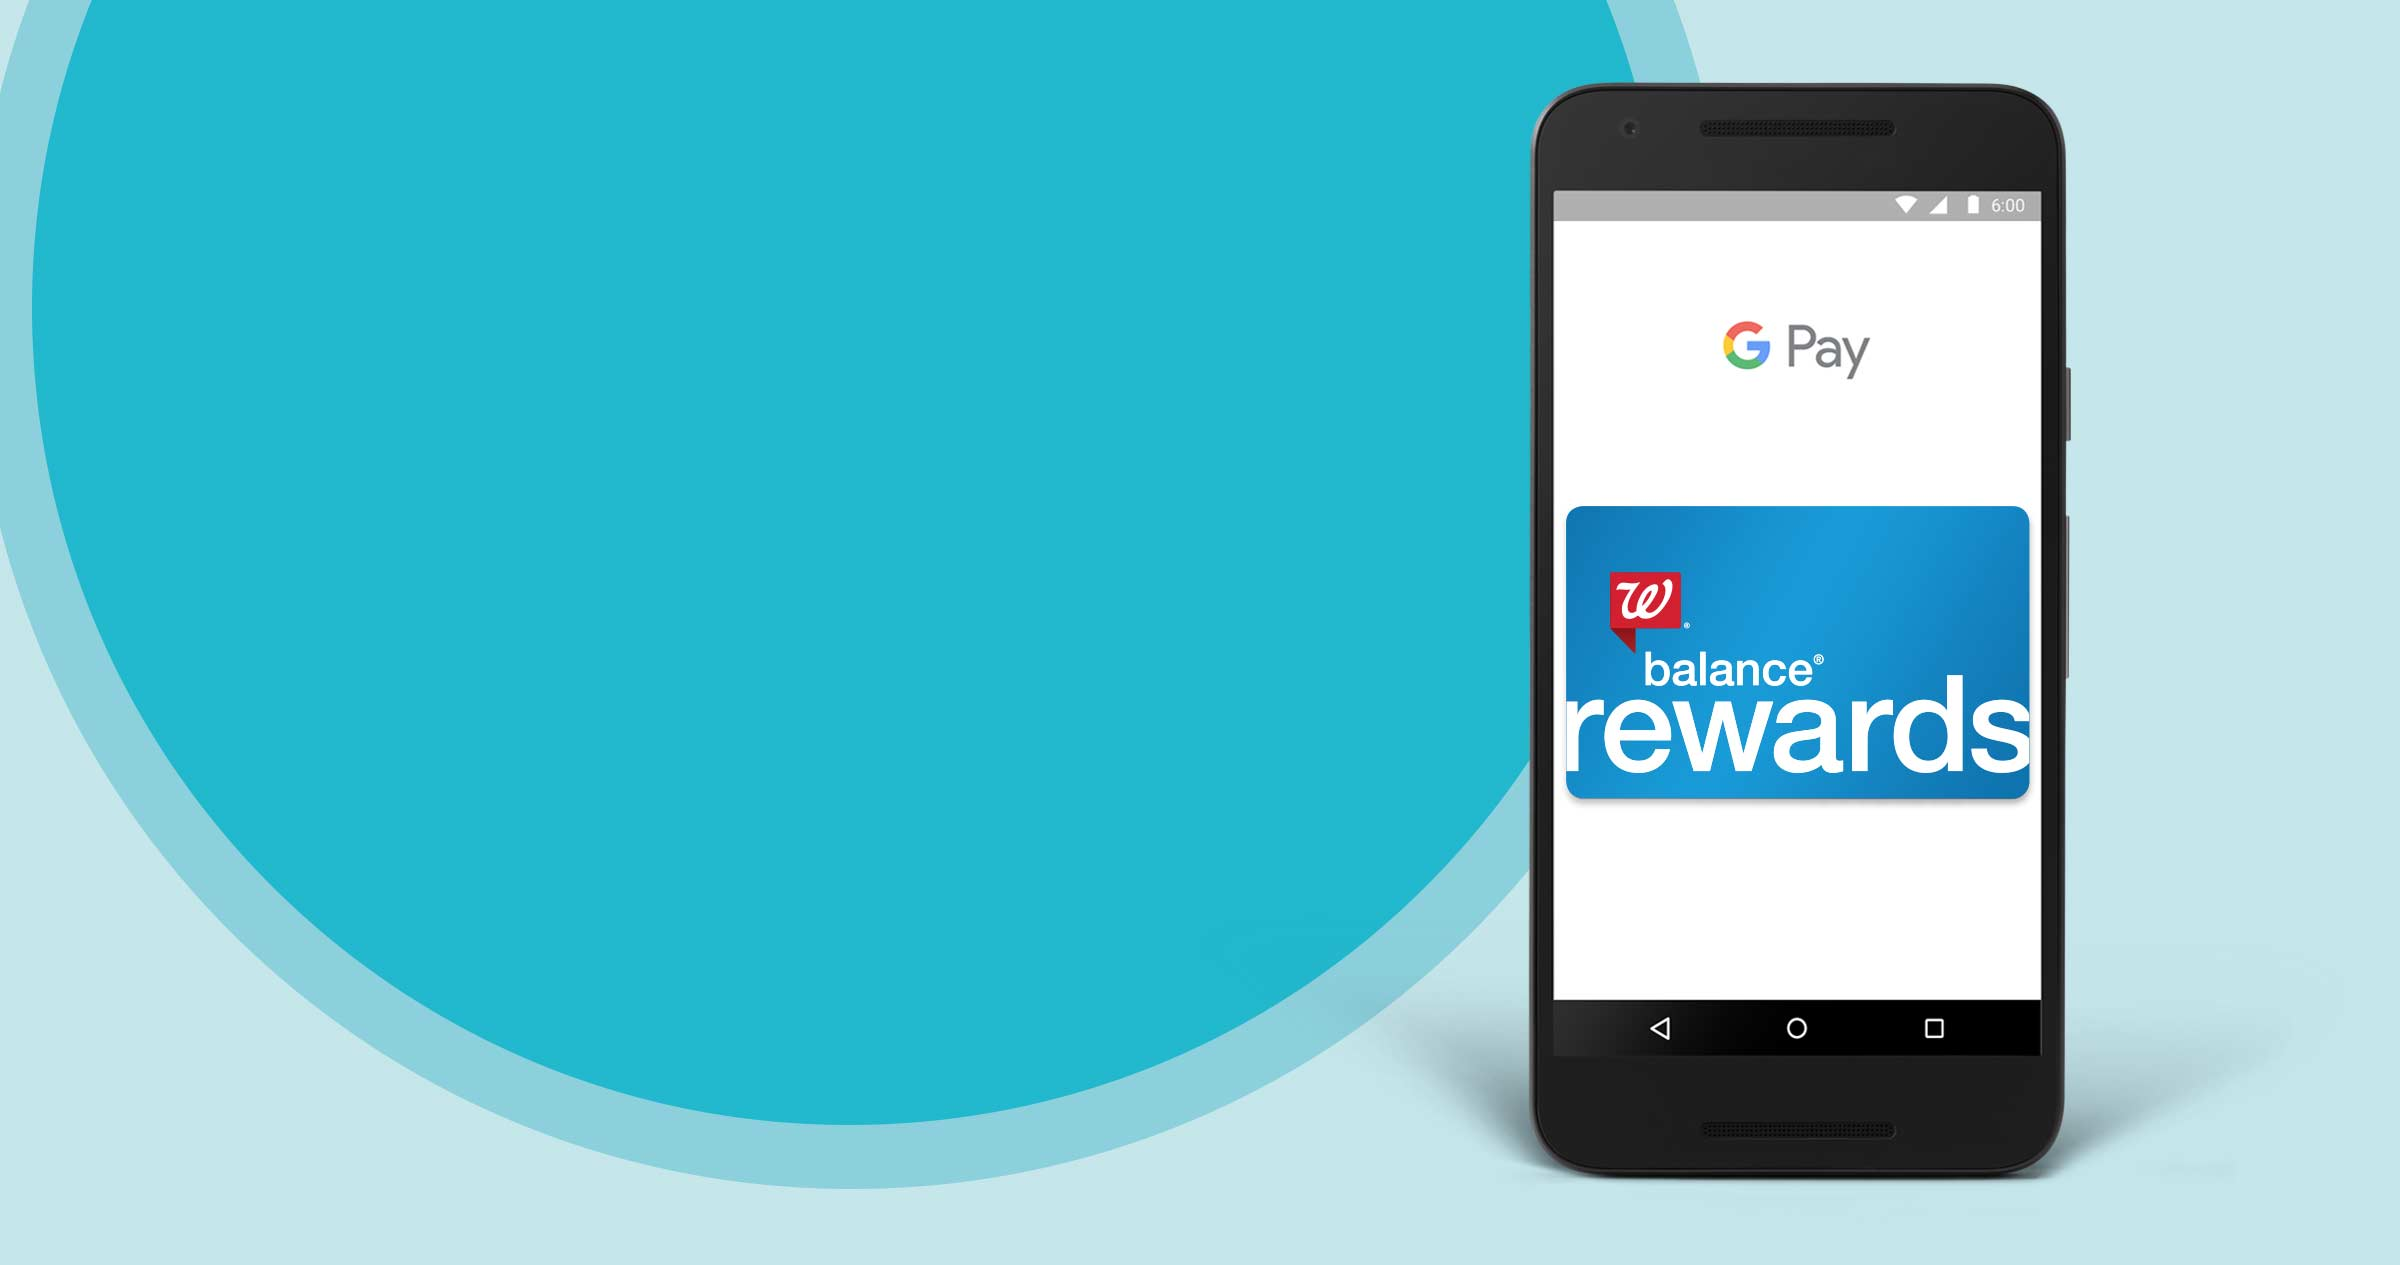 Balance® Rewards with Google Pay™. Checking out (and earning points!) just got easier.